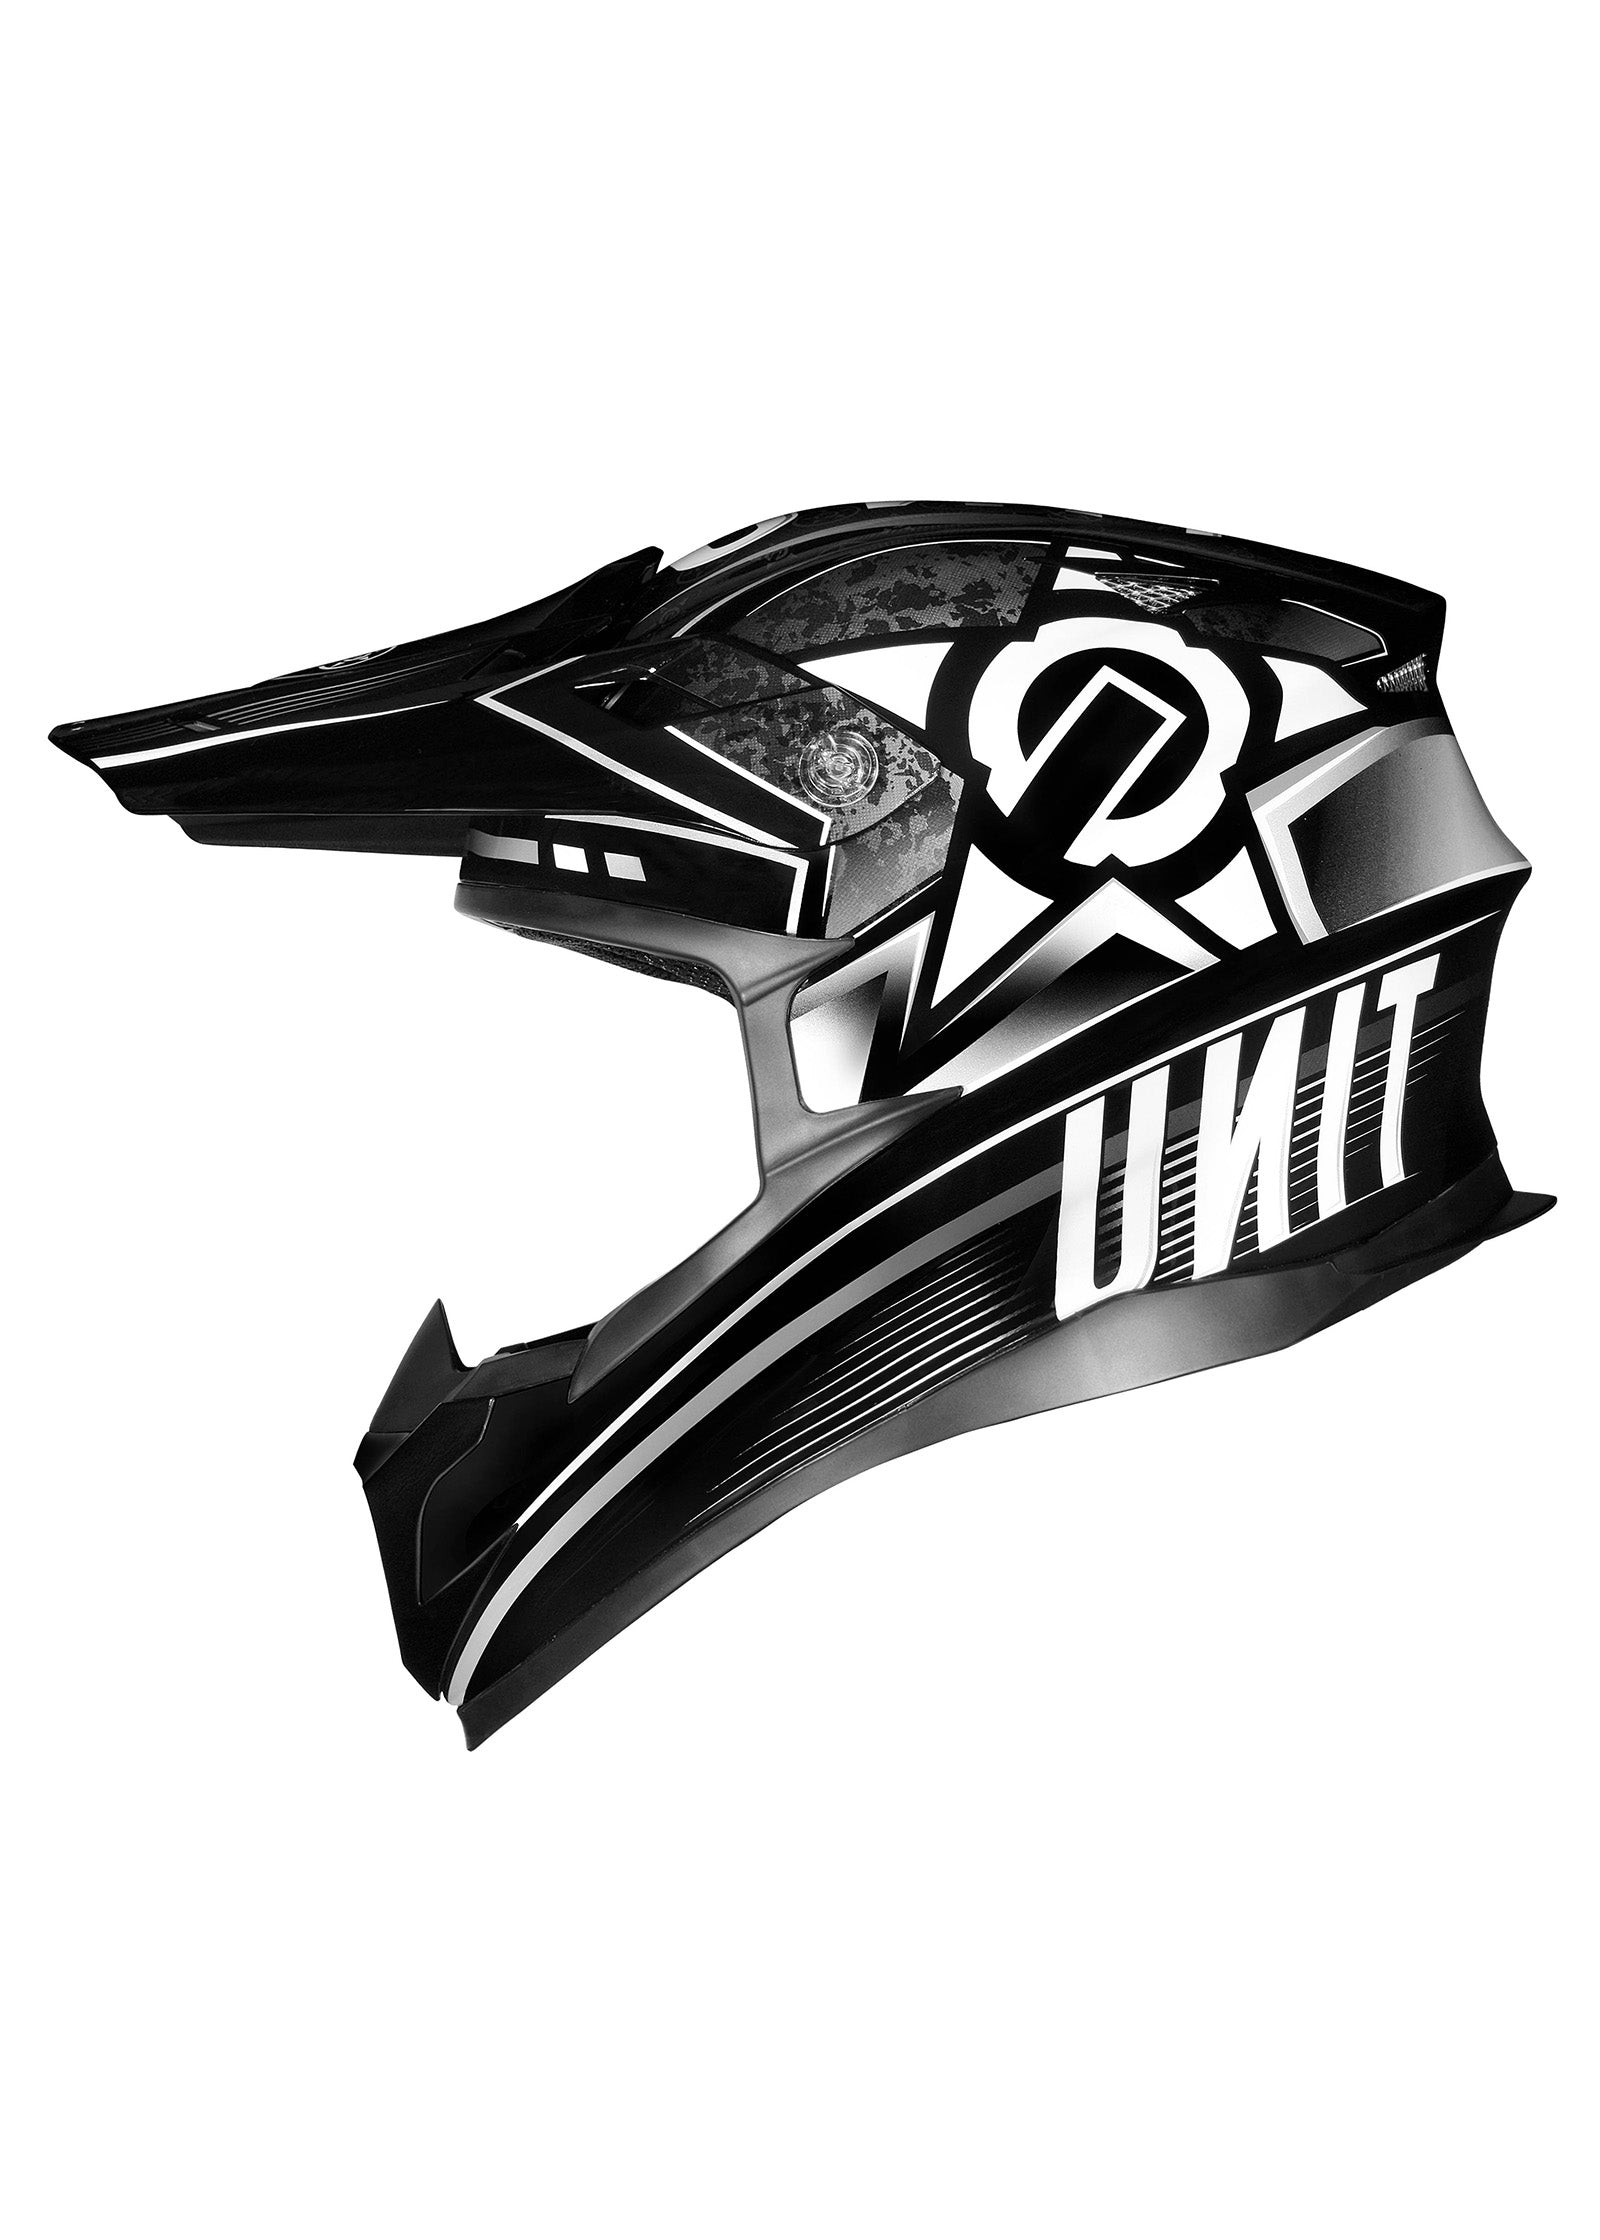 X4.5 Alliance Helmet